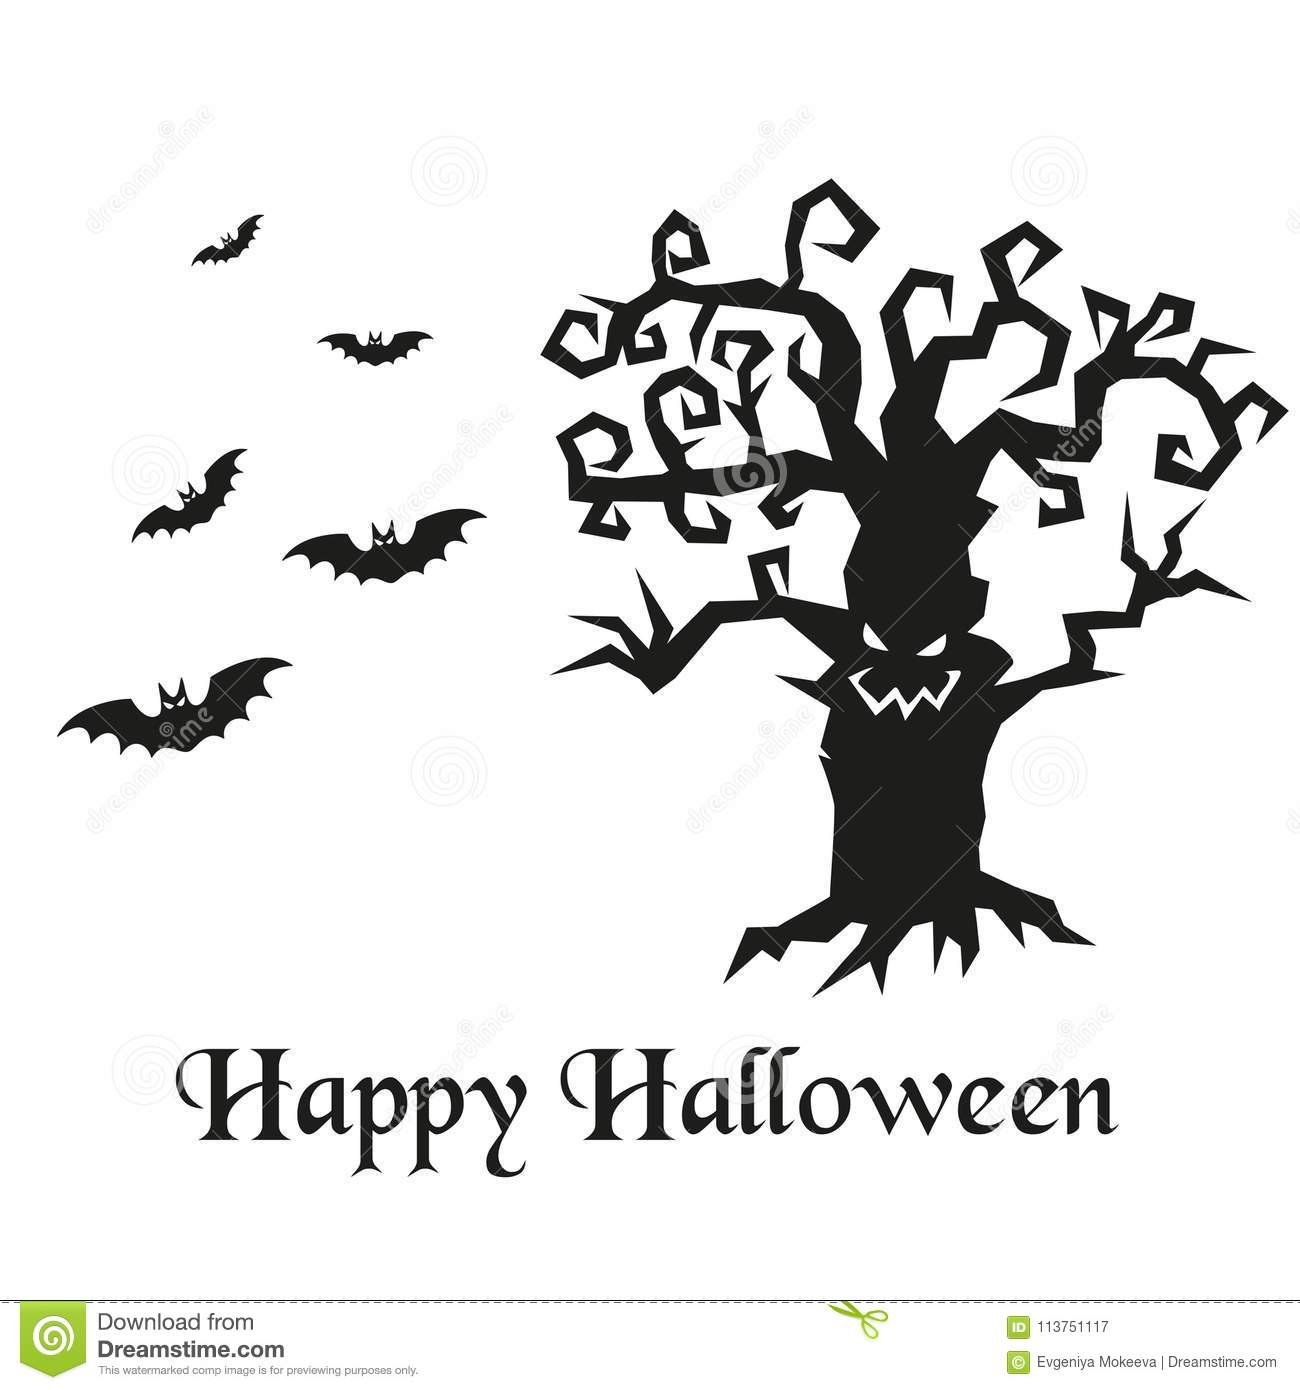 download silhouette of halloween tree and bats stock vector illustration of holiday celebration